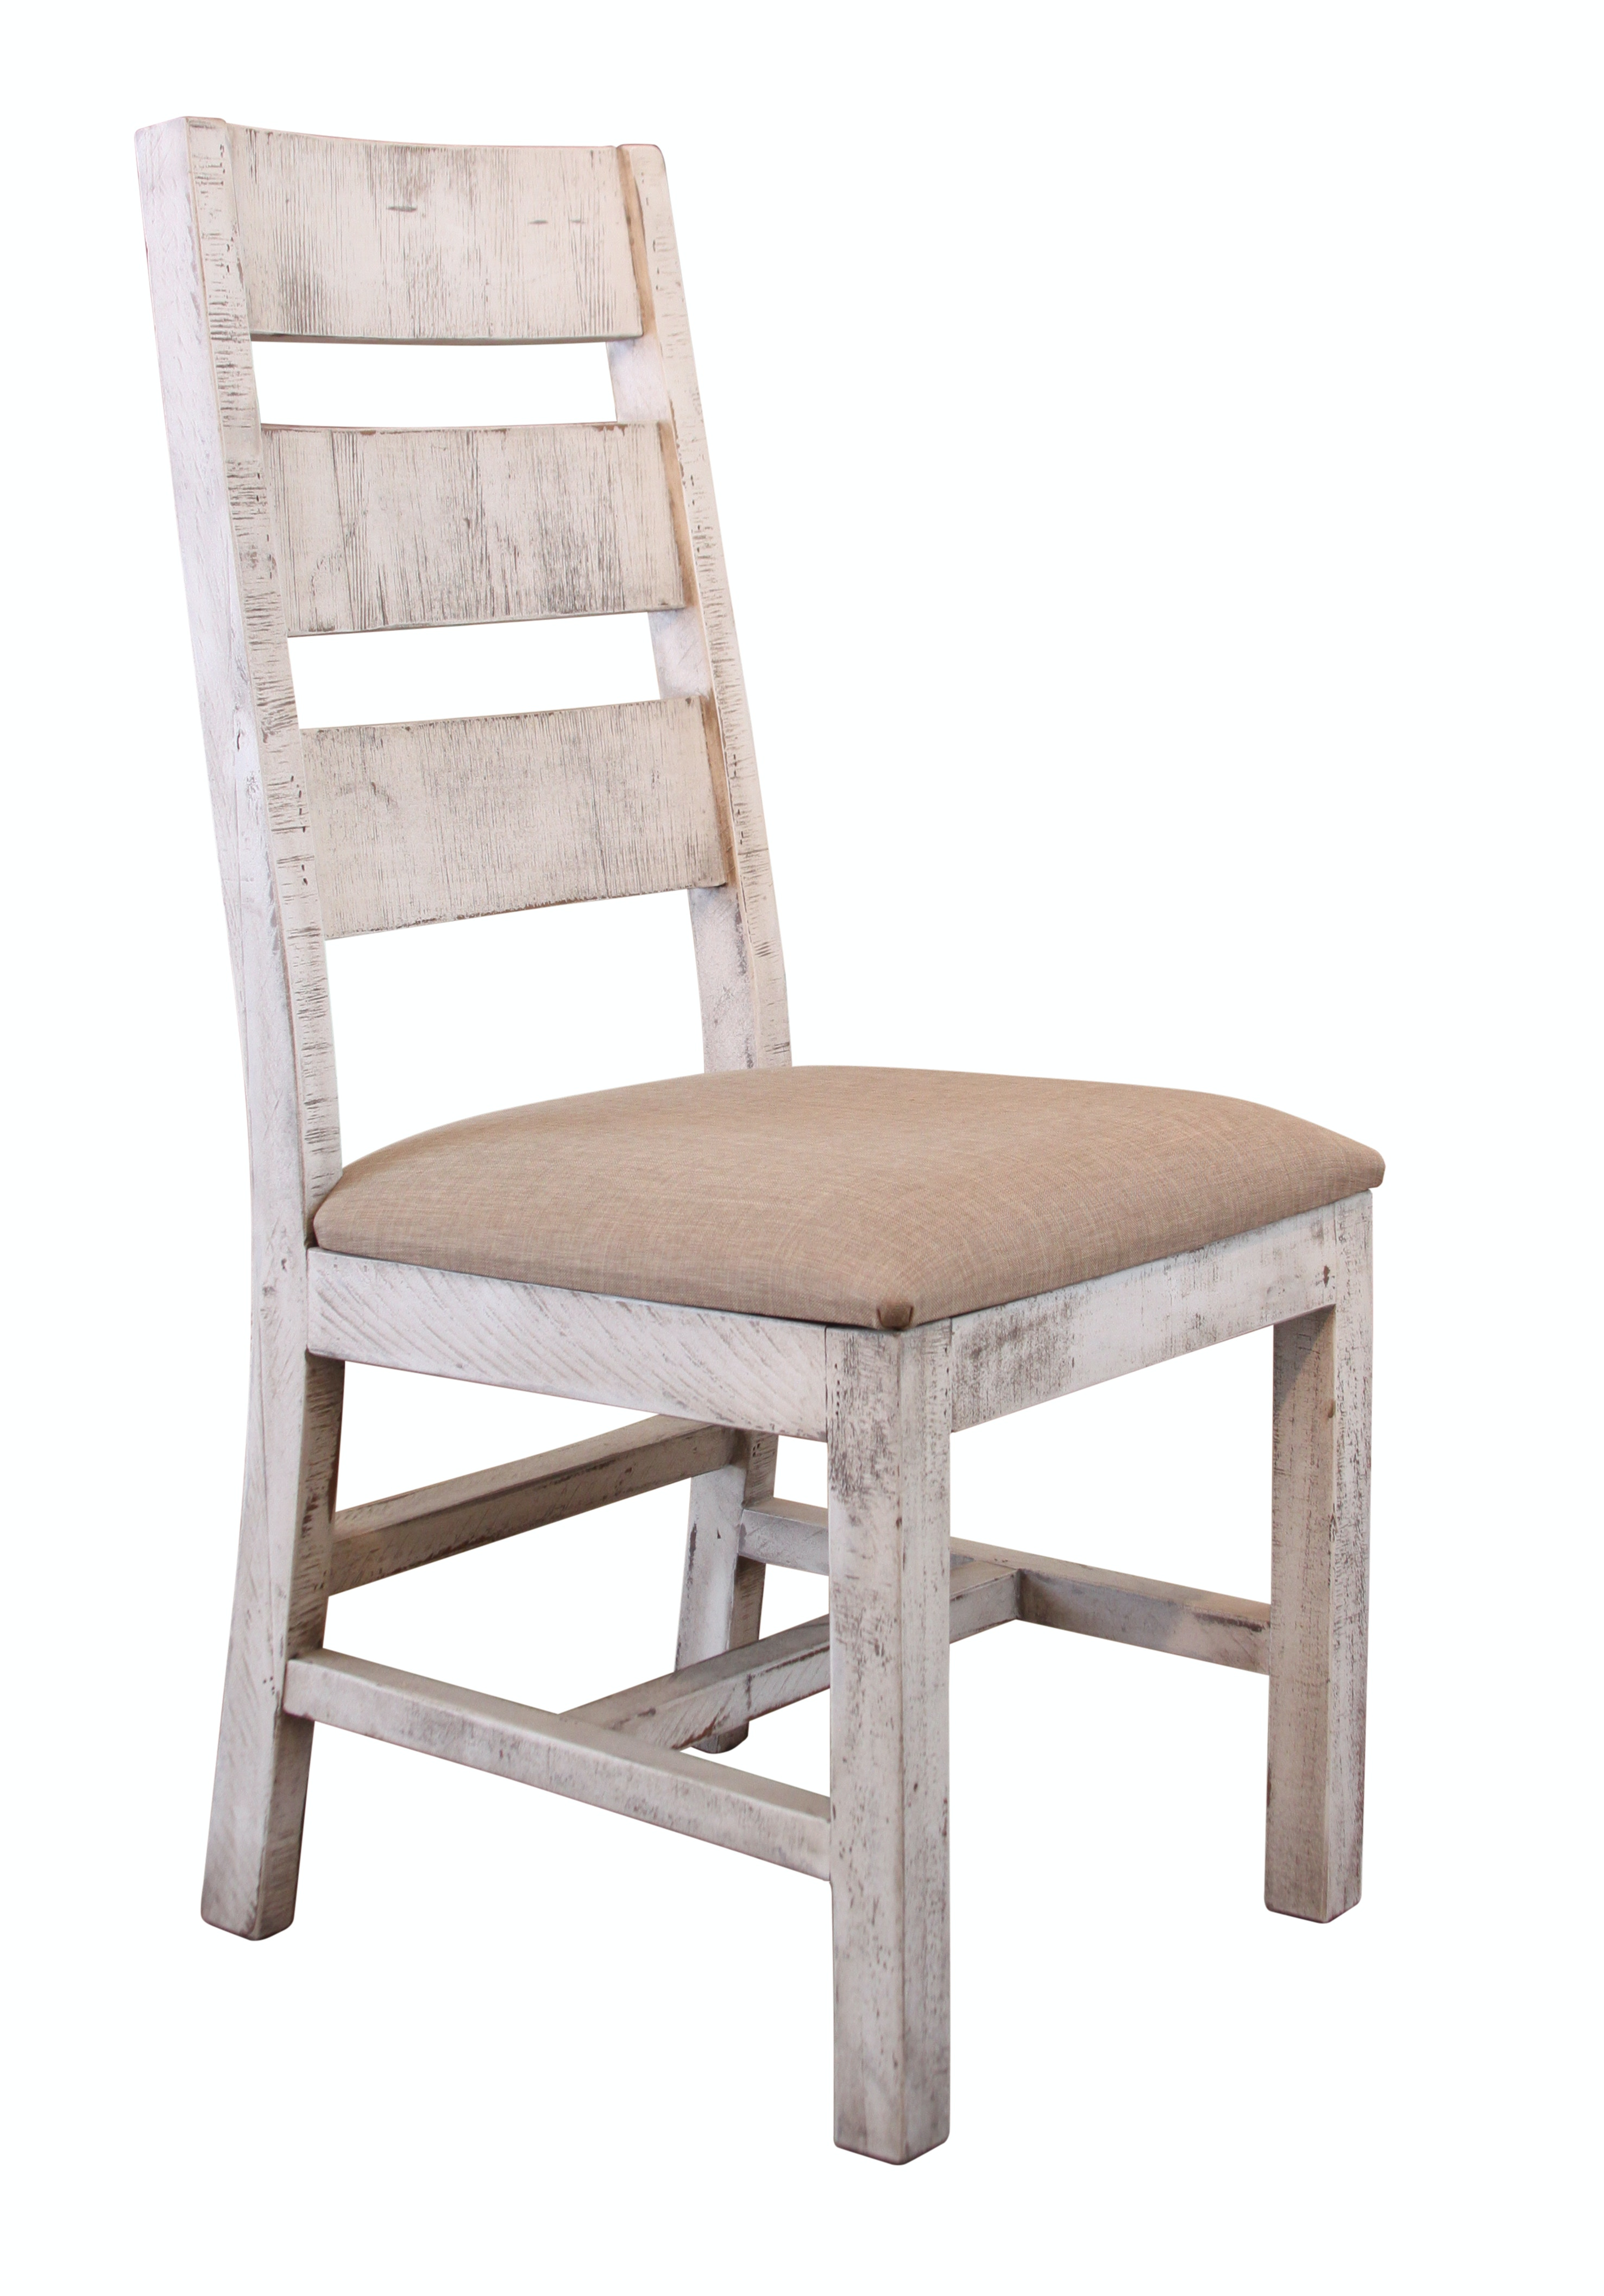 International Furniture Direct Chair With Ladder Back, Fabric Seat, Solid  Wood IFD1022CHAIR